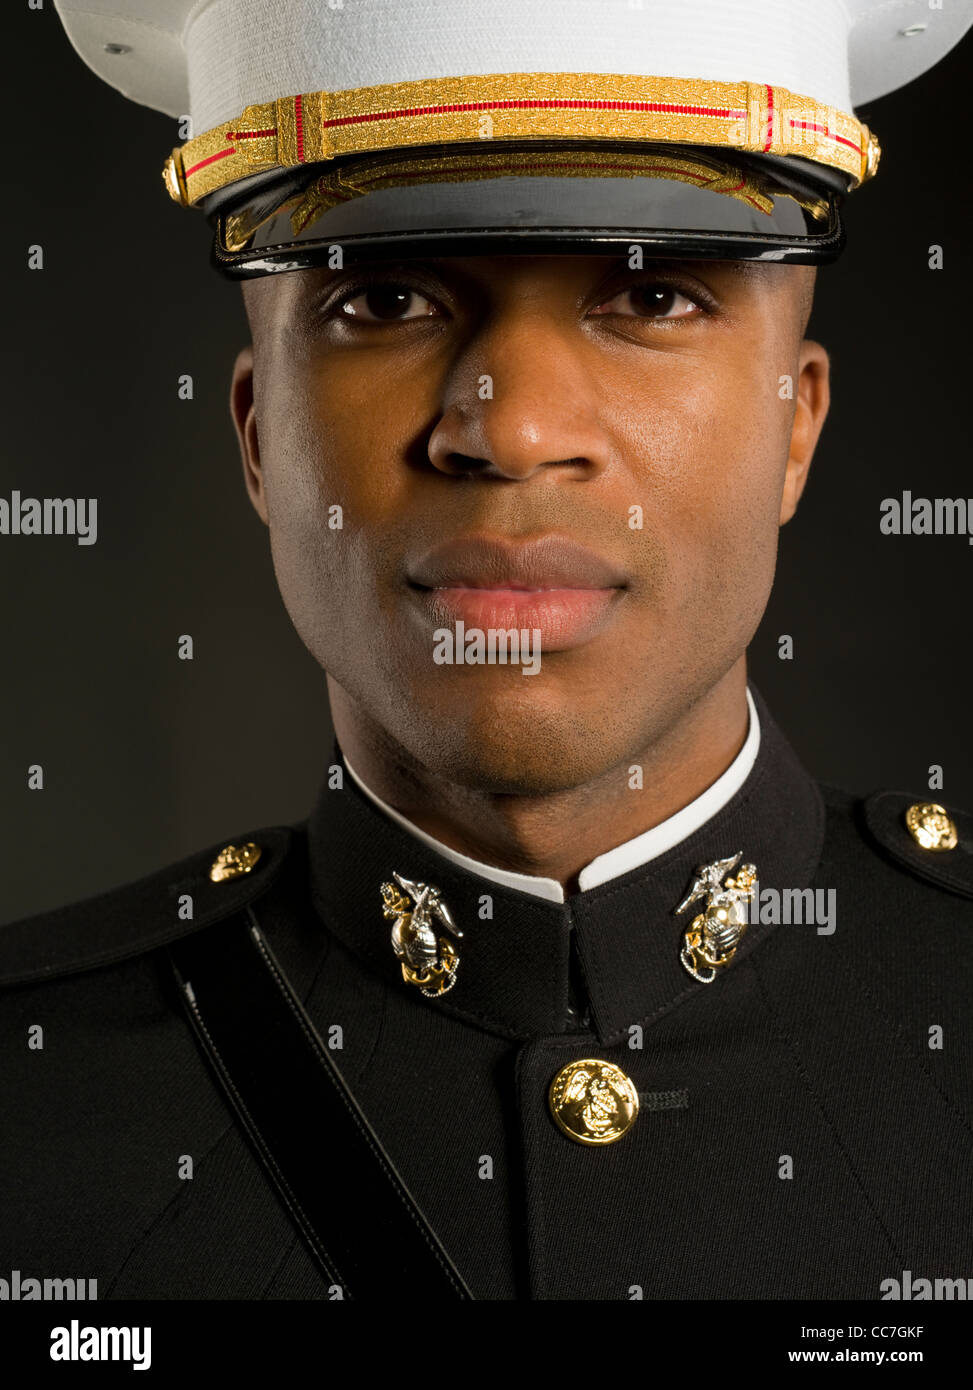 United States Marine Corps Officer in Blue Dress